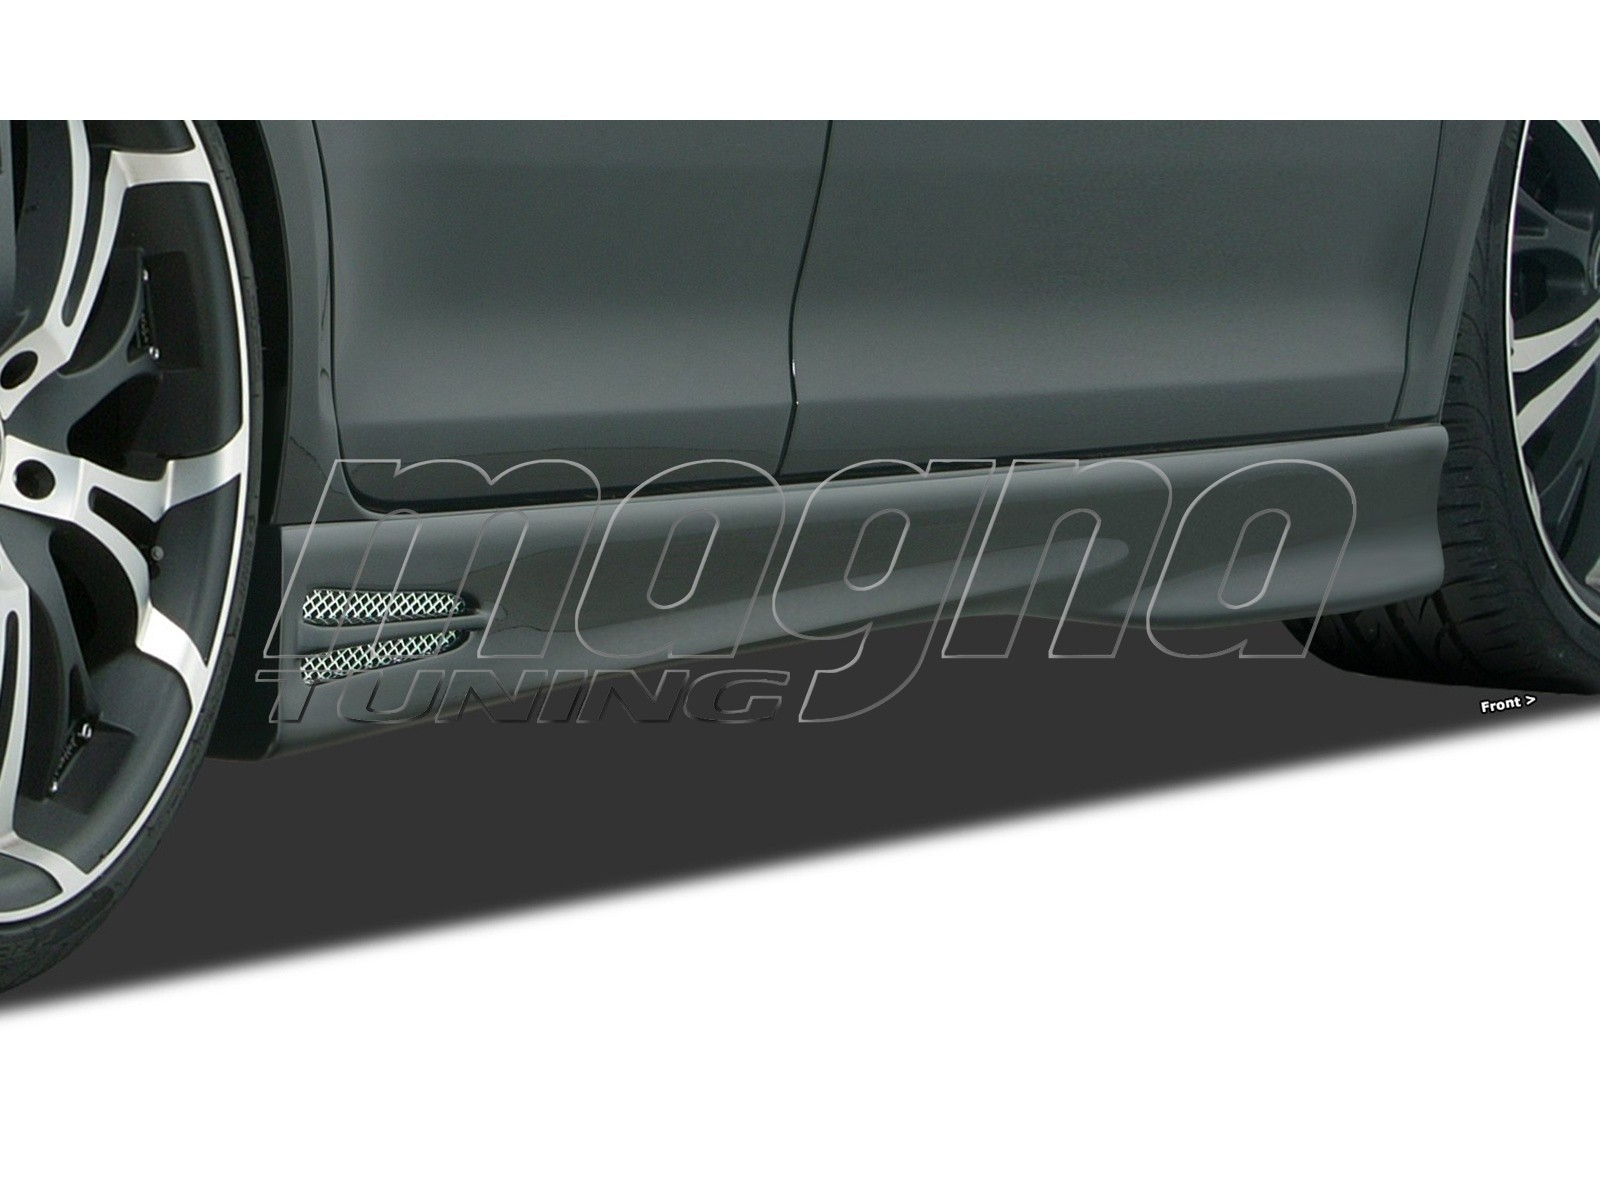 Opel Corsa F GT5 Side Skirts